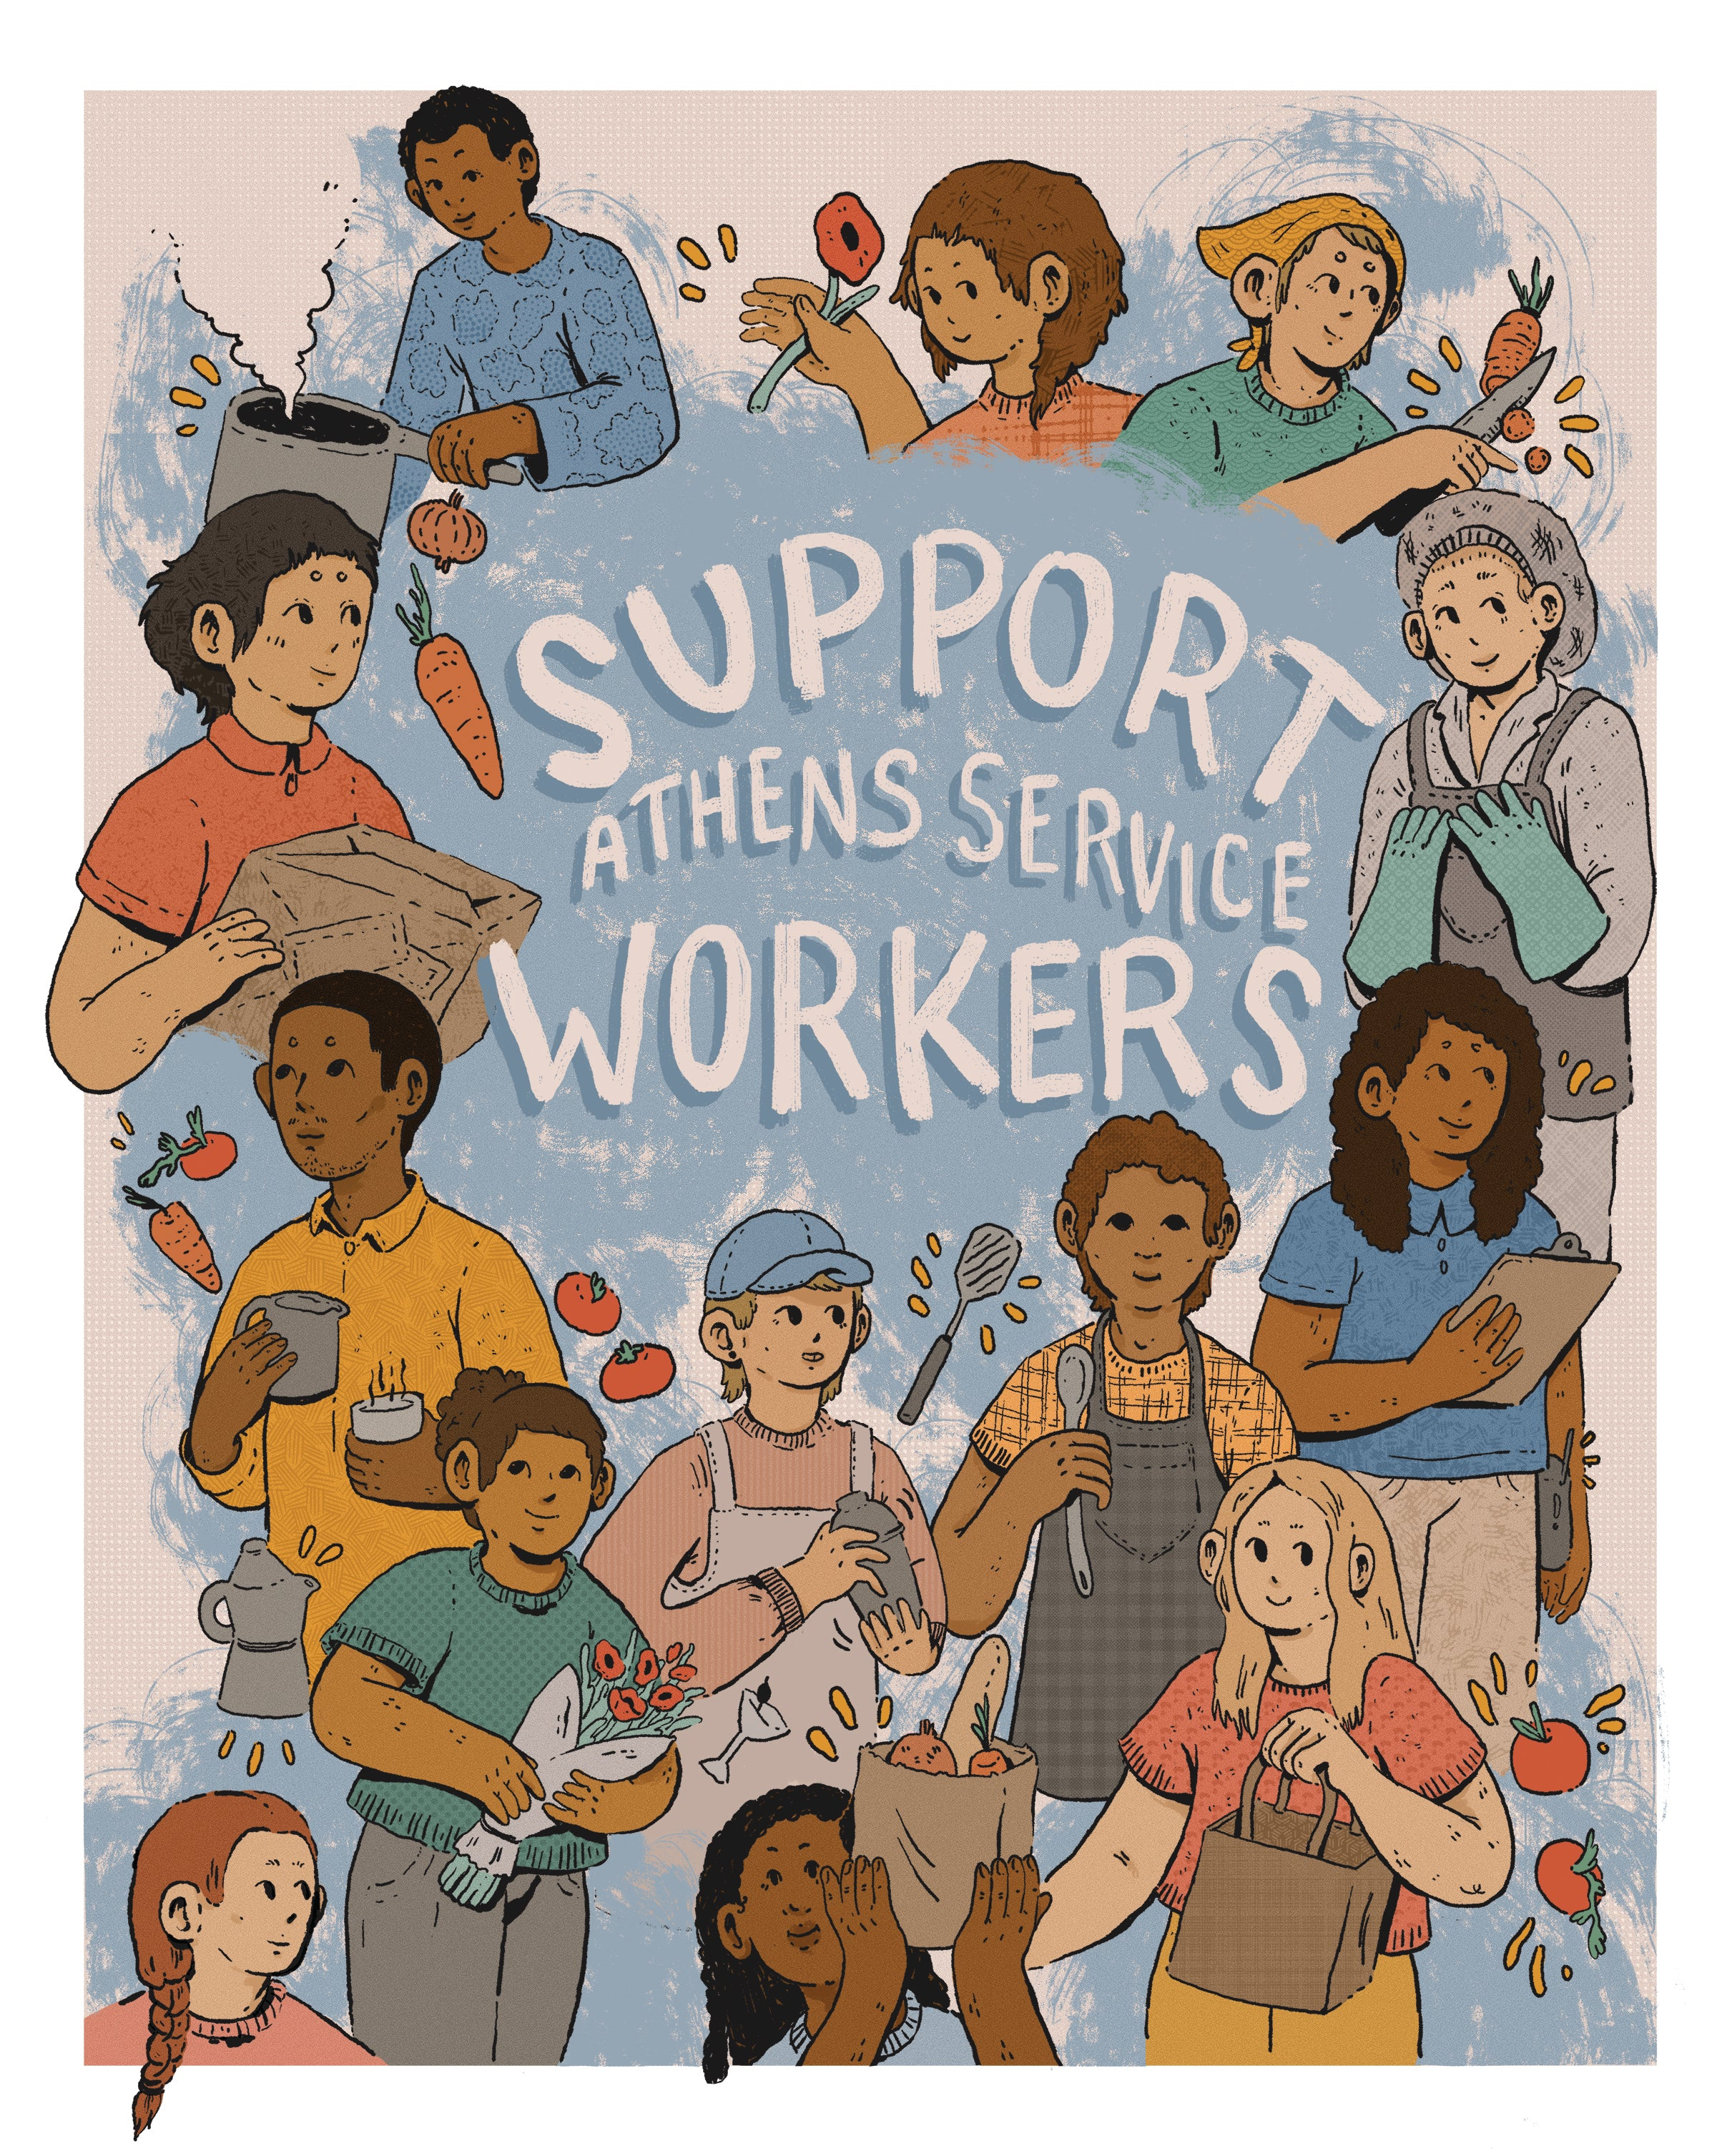 "Athens Banner Project: Archival Print of ""Support Athens Service Workers"" by Klée Schell - by Klée Schell - K. A. Artist Shop"